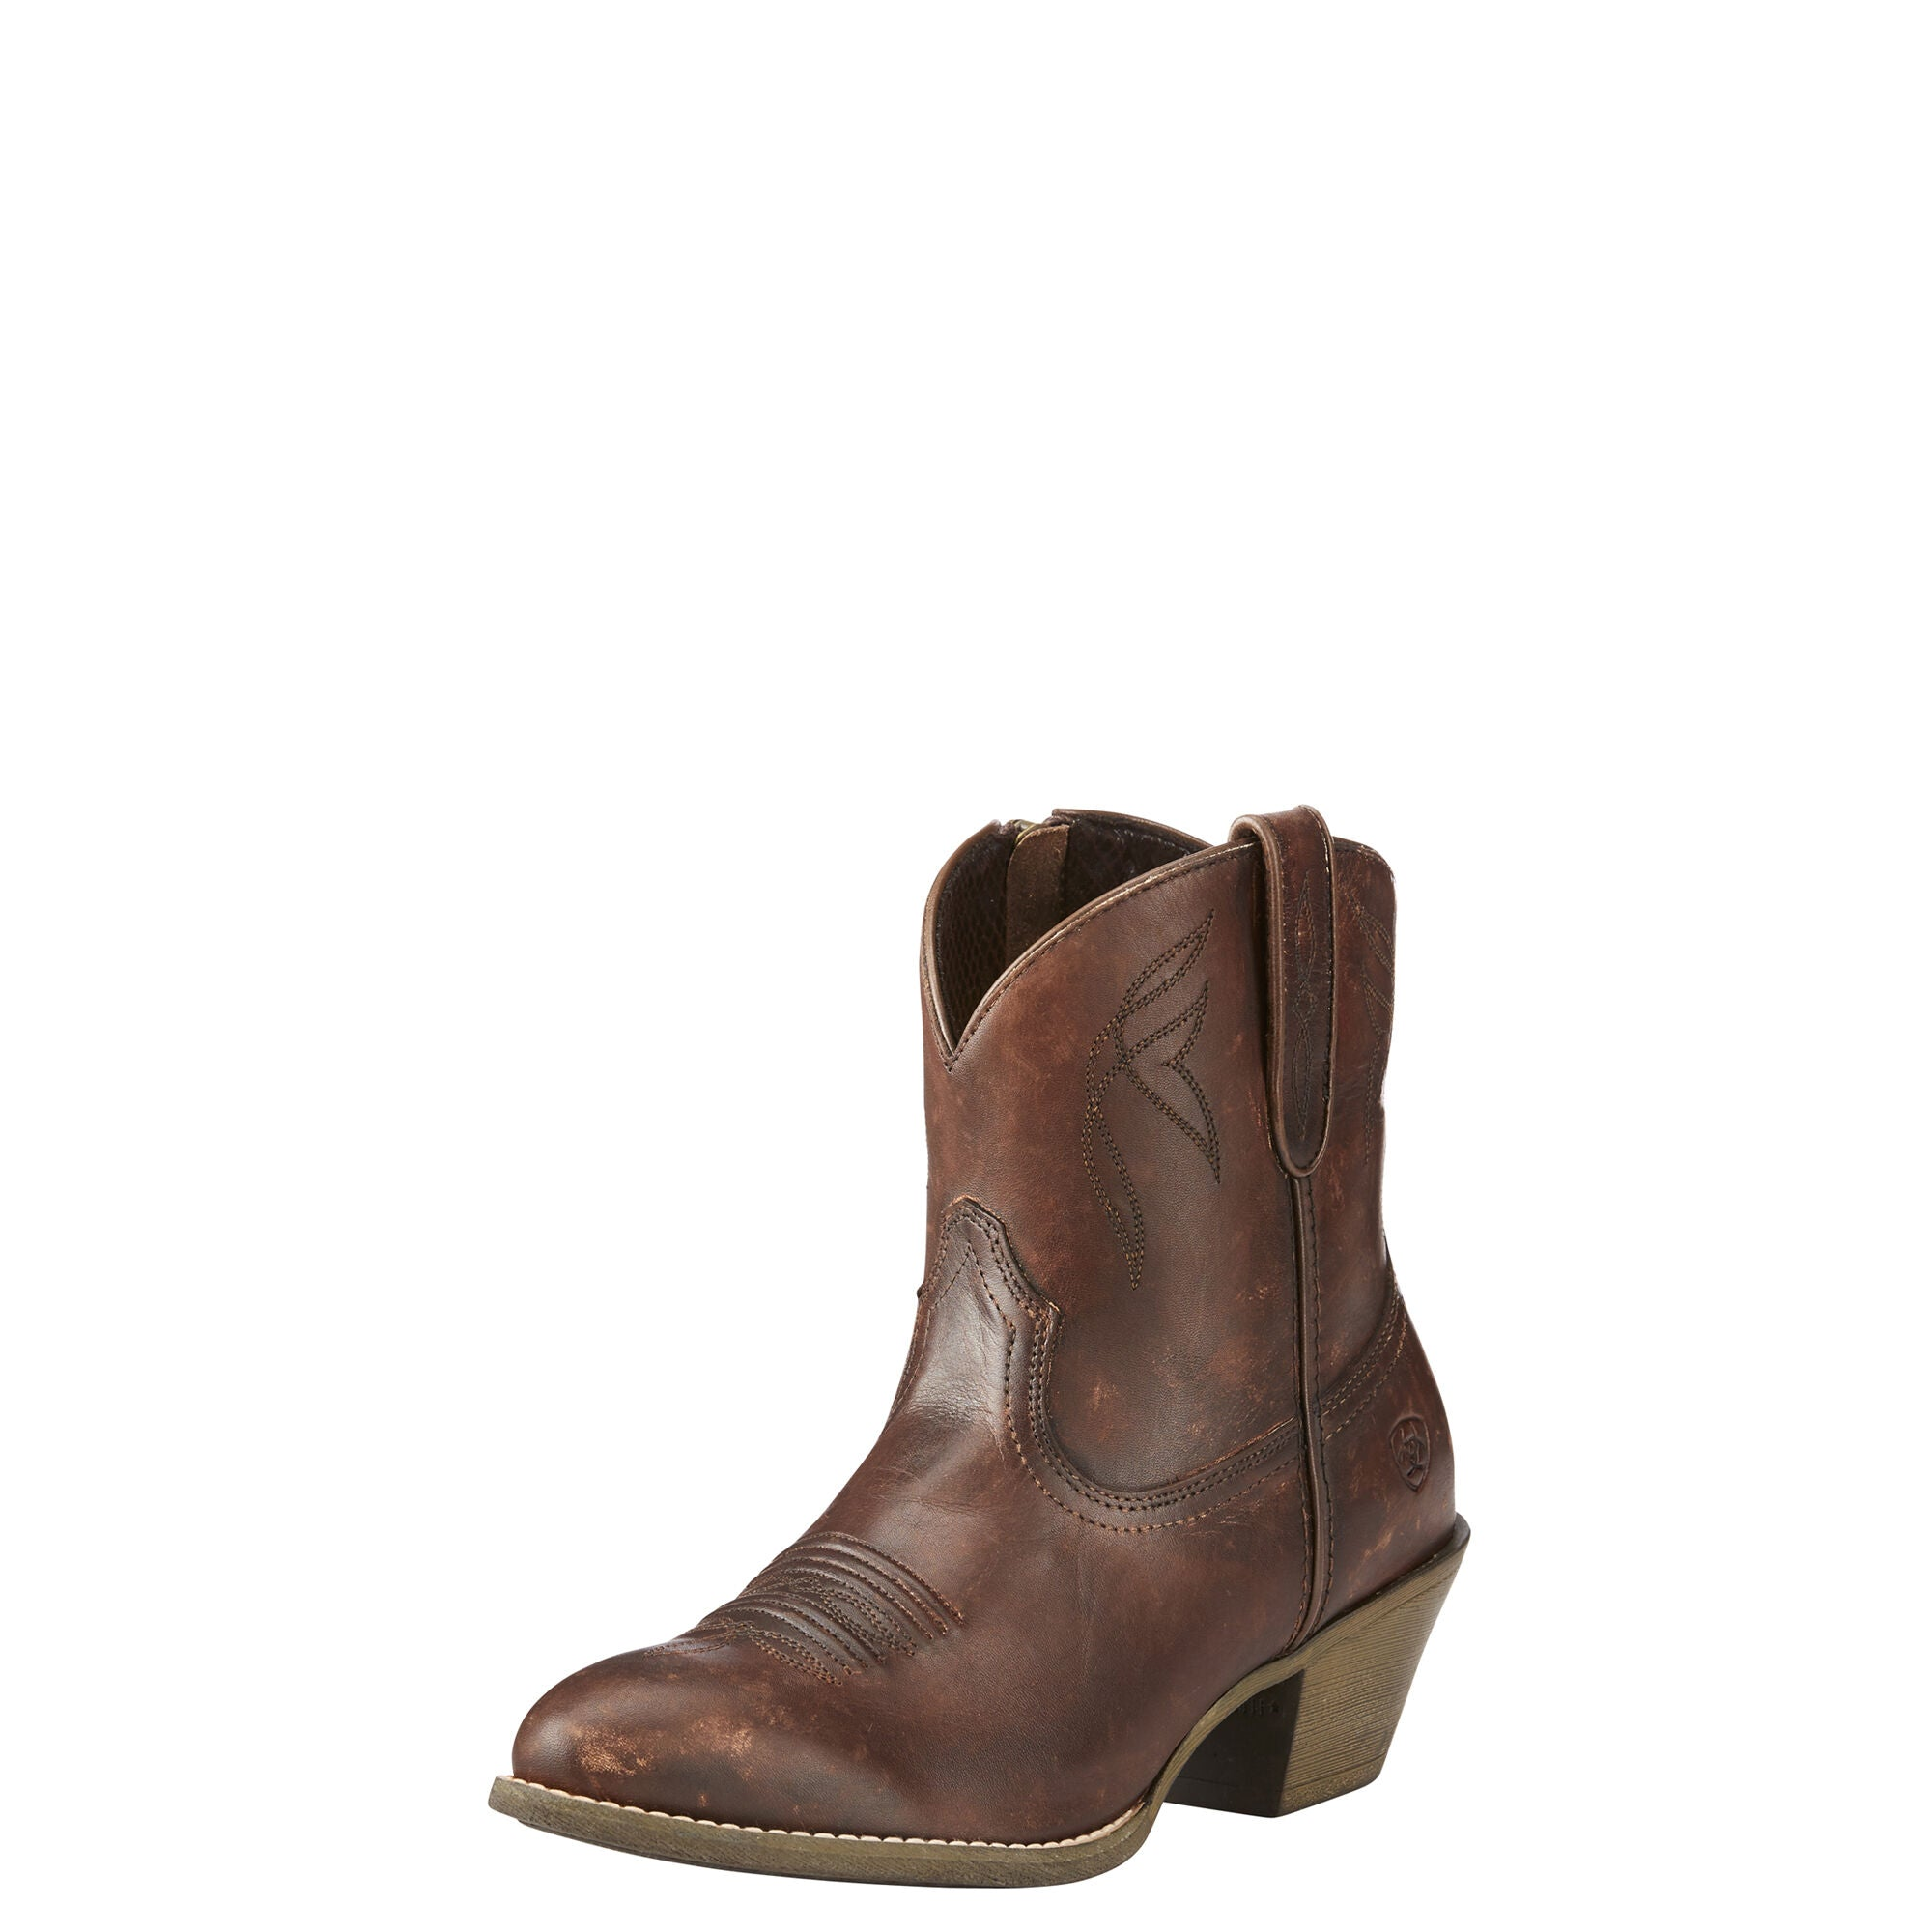 Ariat Women's Darlin Boot - Naturally Distressed Brown